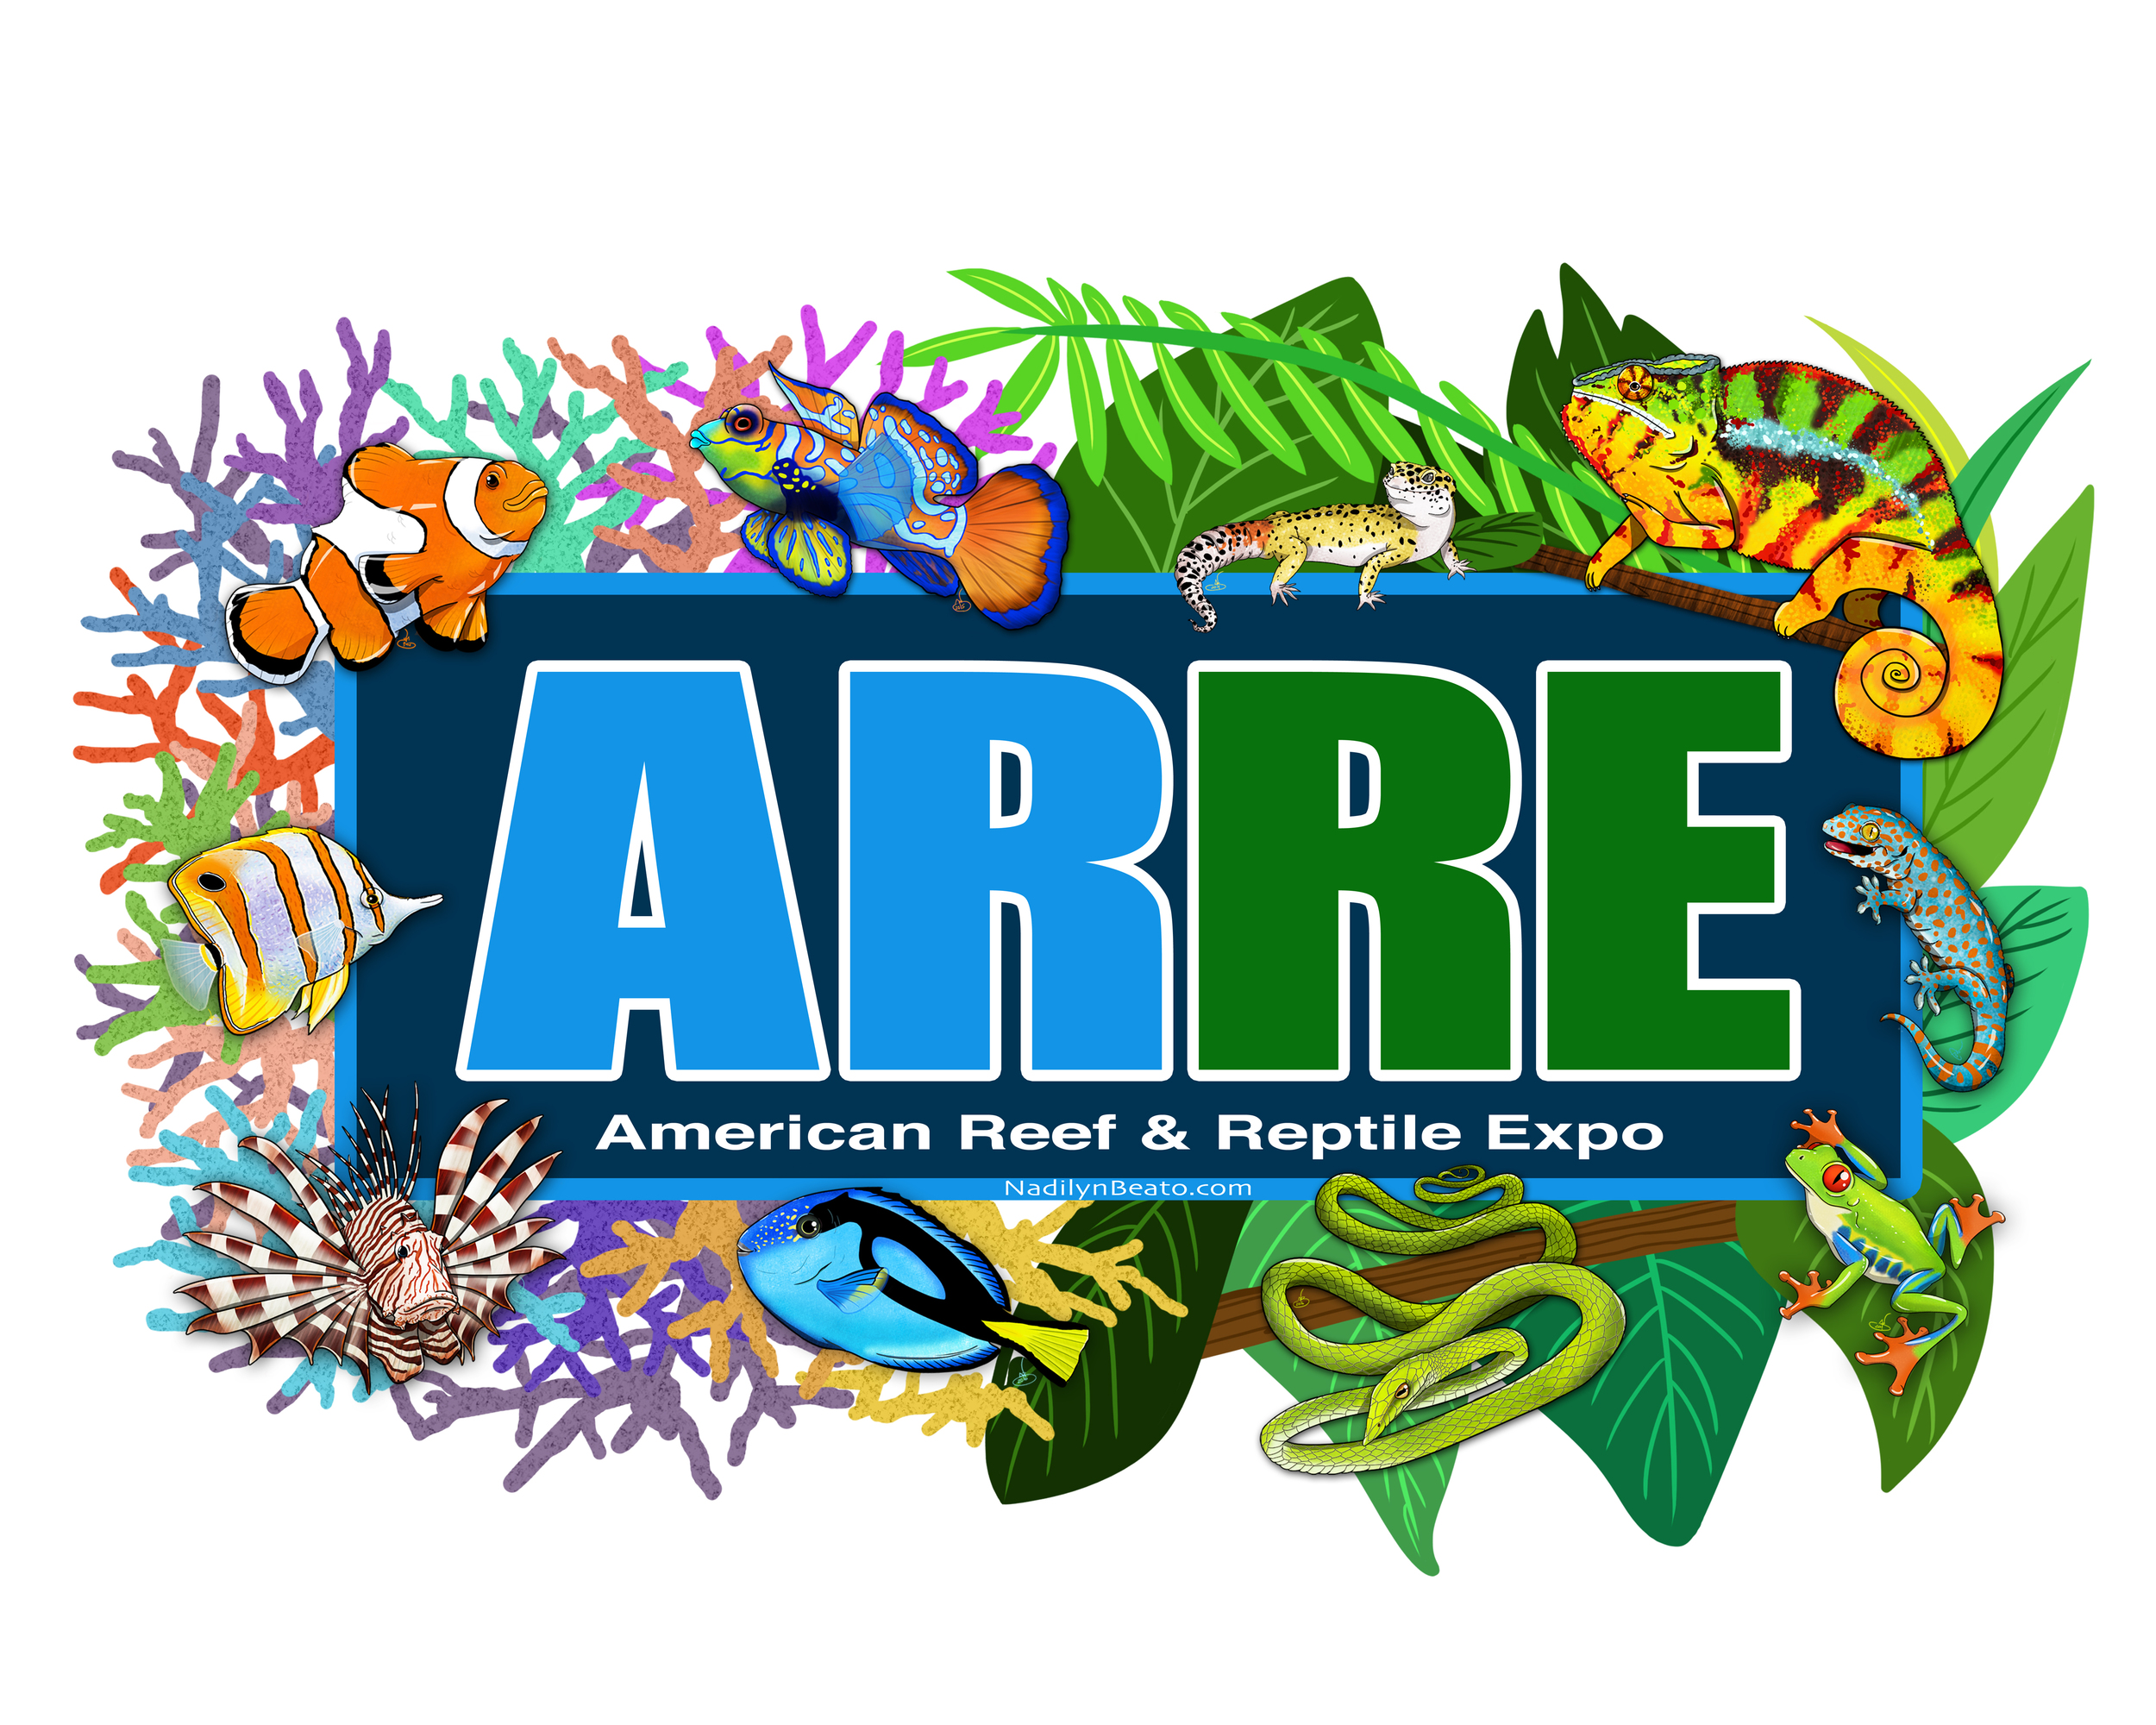 Sticker Design for the American Reef & Reptile Expo